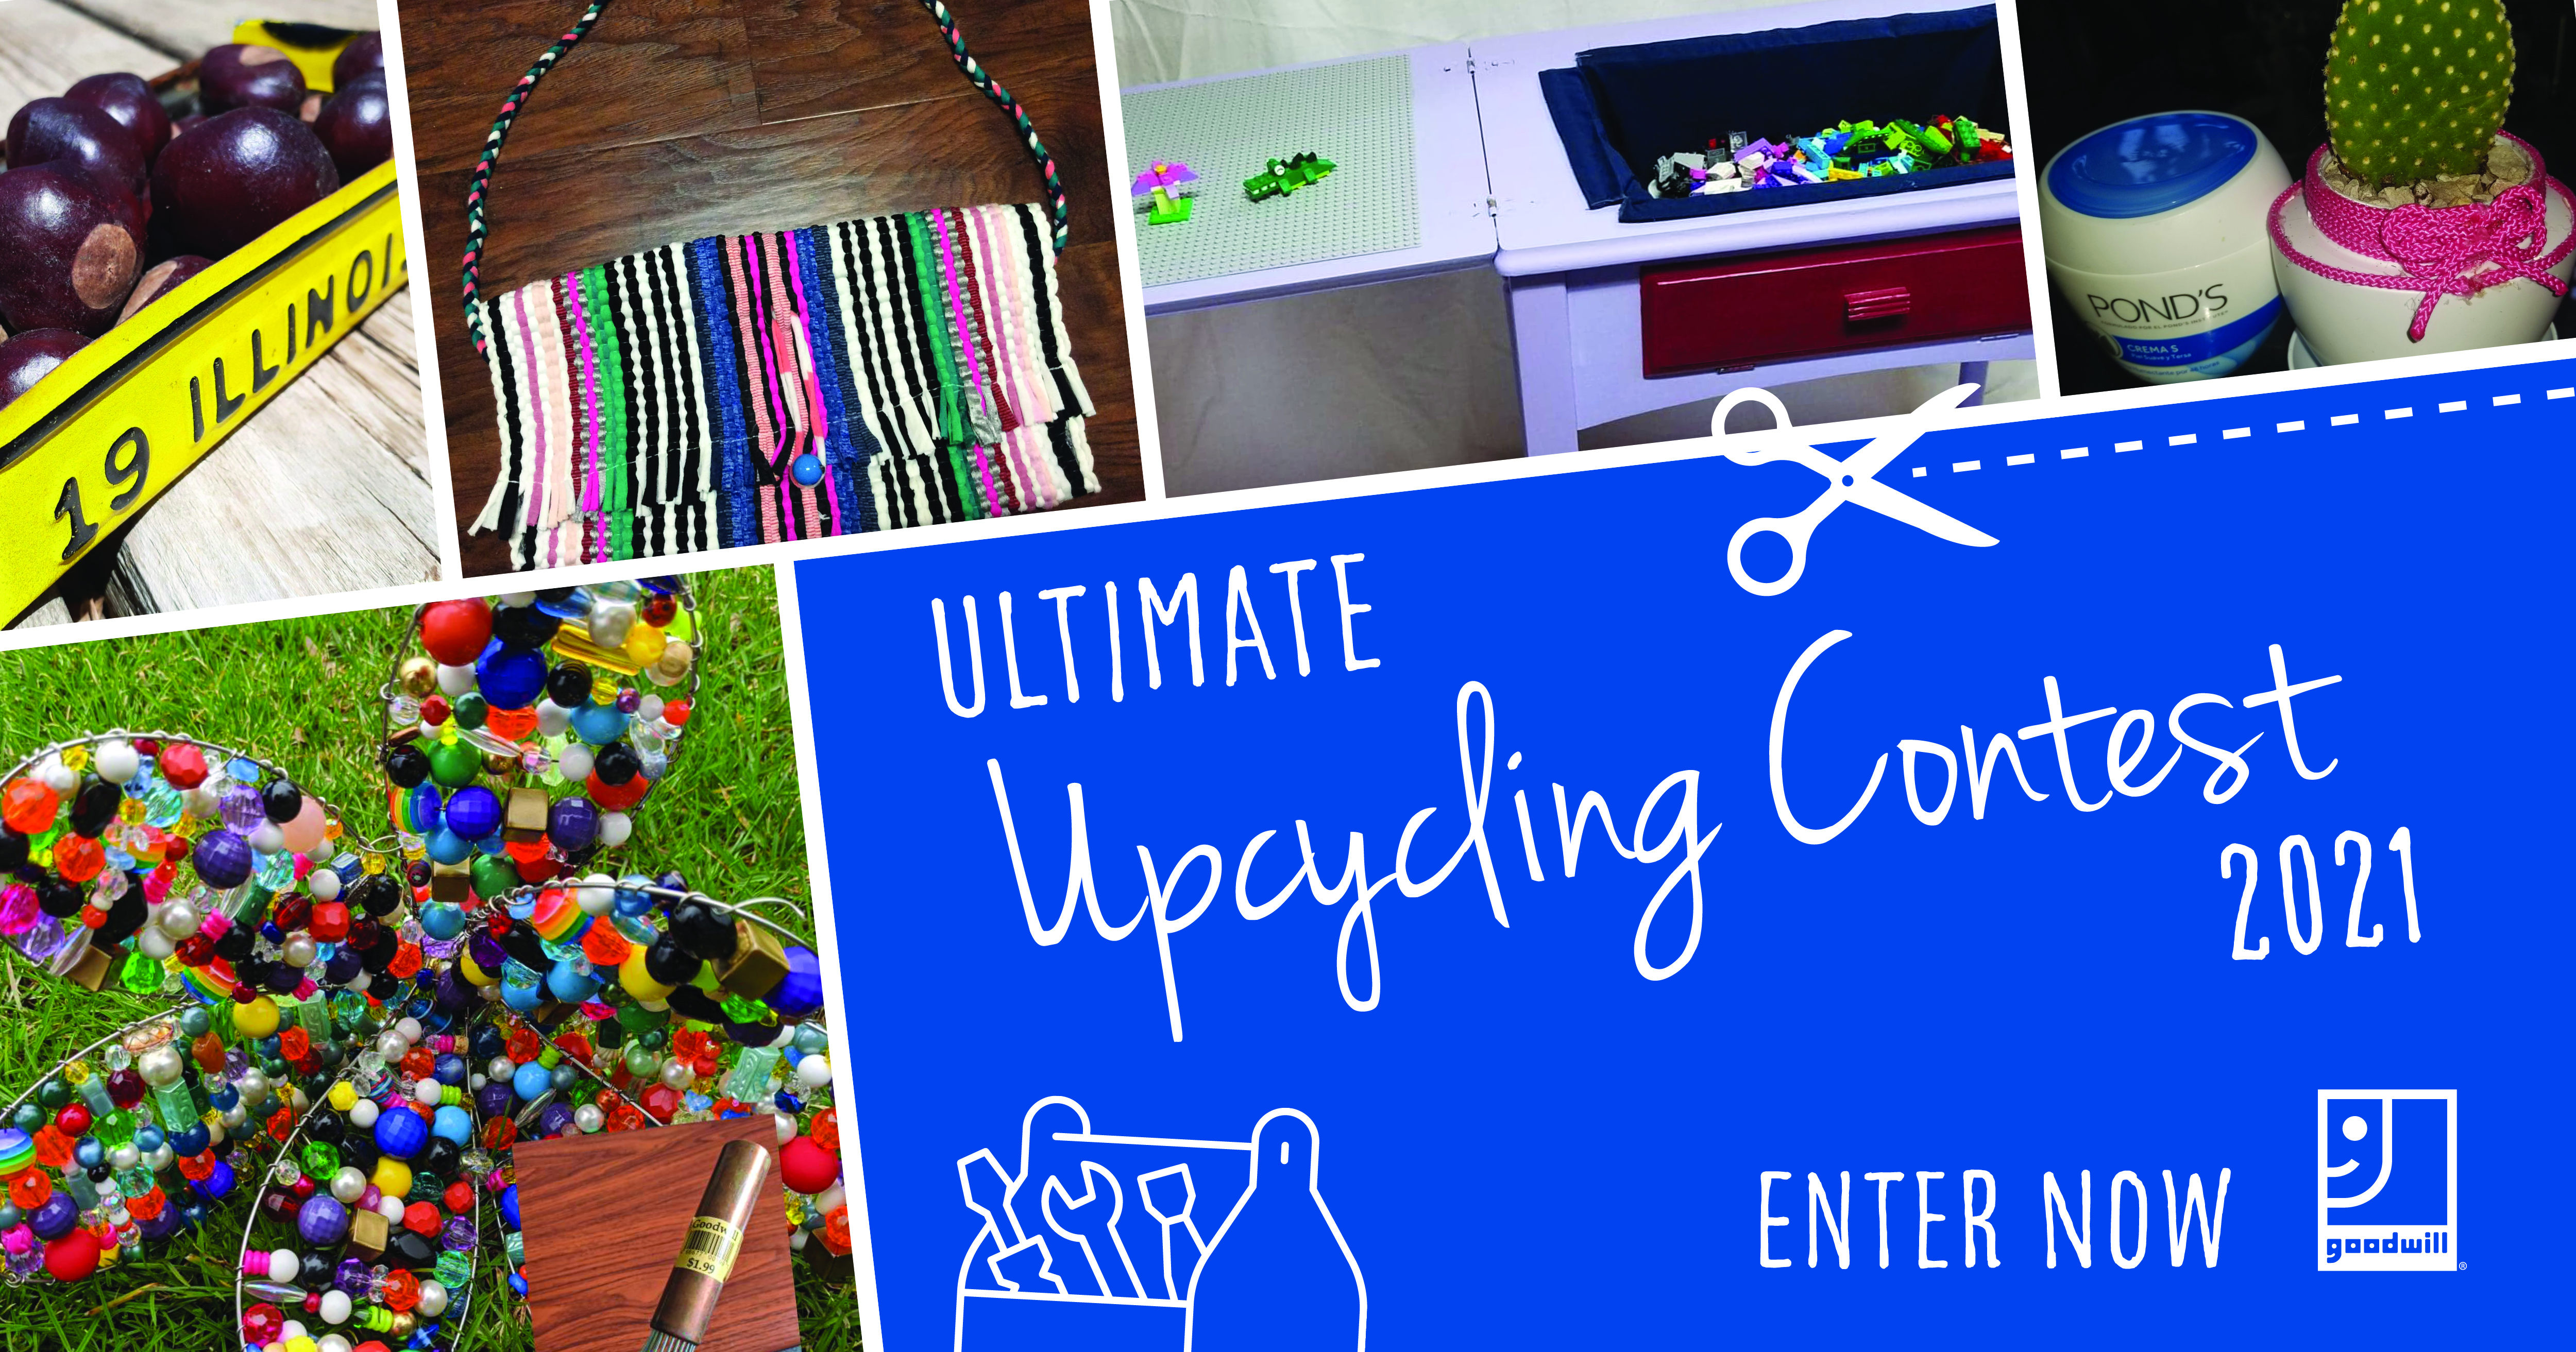 Upcycling Contest 2021